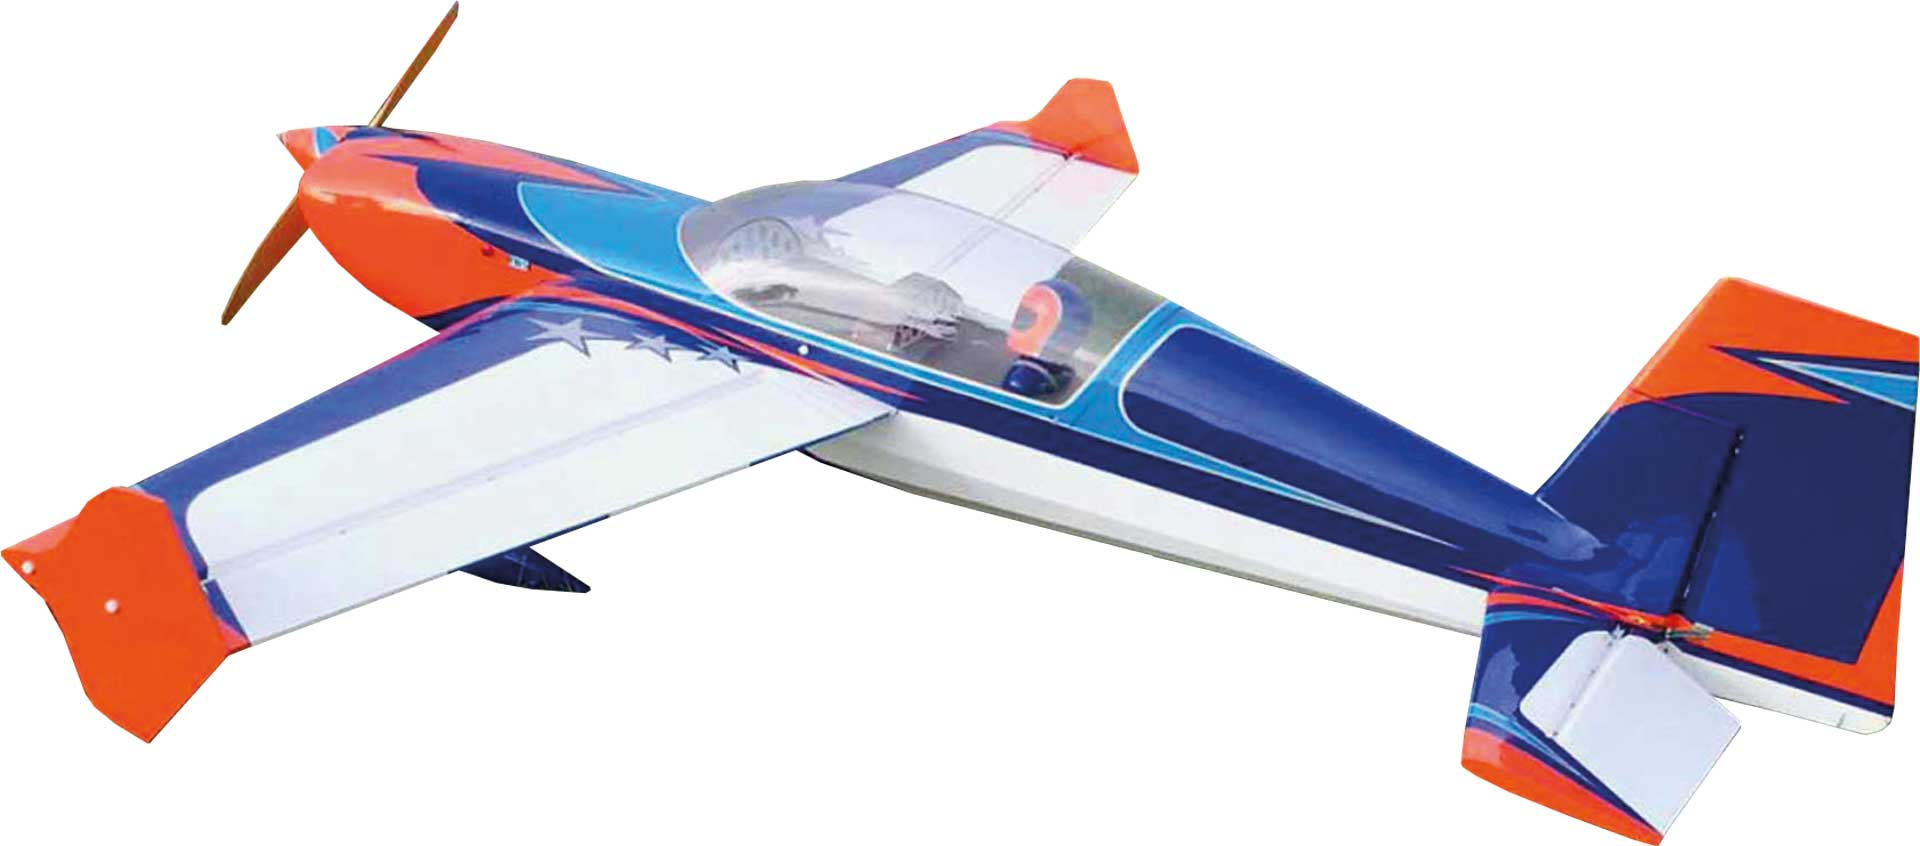 "EXTREMEFLIGHT-RC EXTRA 300 85"" ORANGE / BLAU / WEISS ARF VERBRENNER/ELEKTRO VERSION"